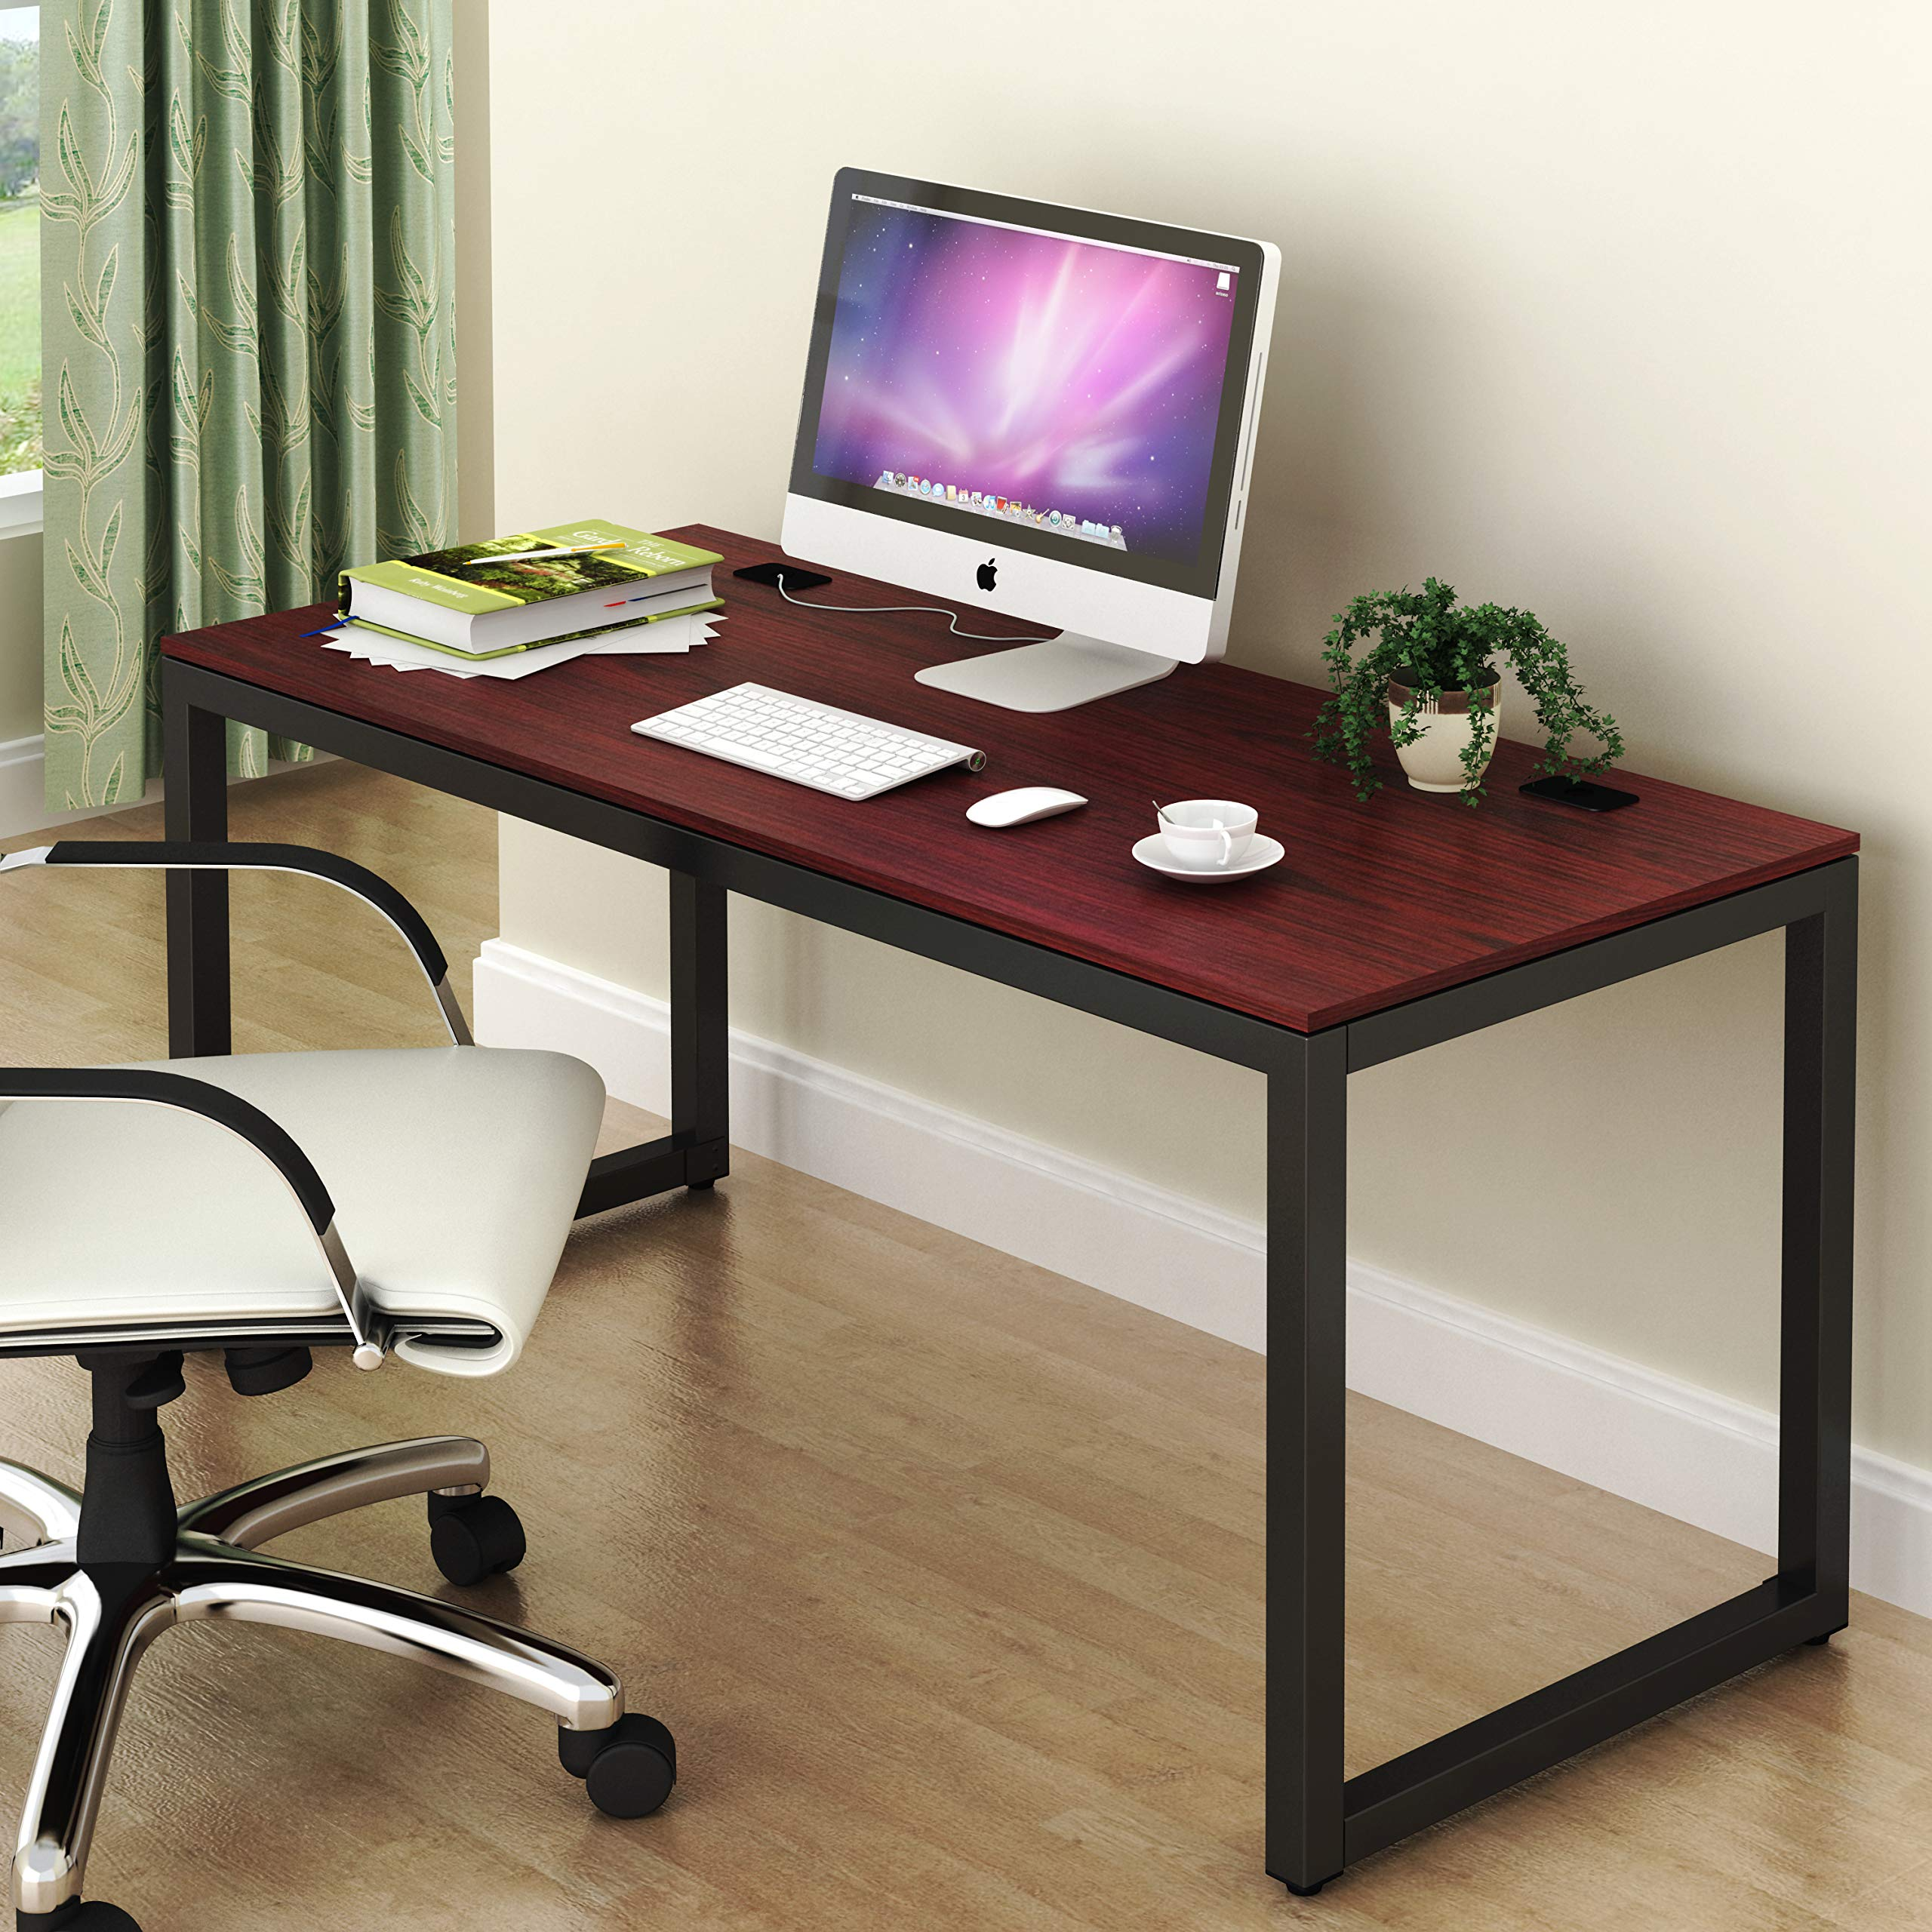 SHW Home Office 55-Inch Large Computer Desk, Cherry by SHW (Image #1)